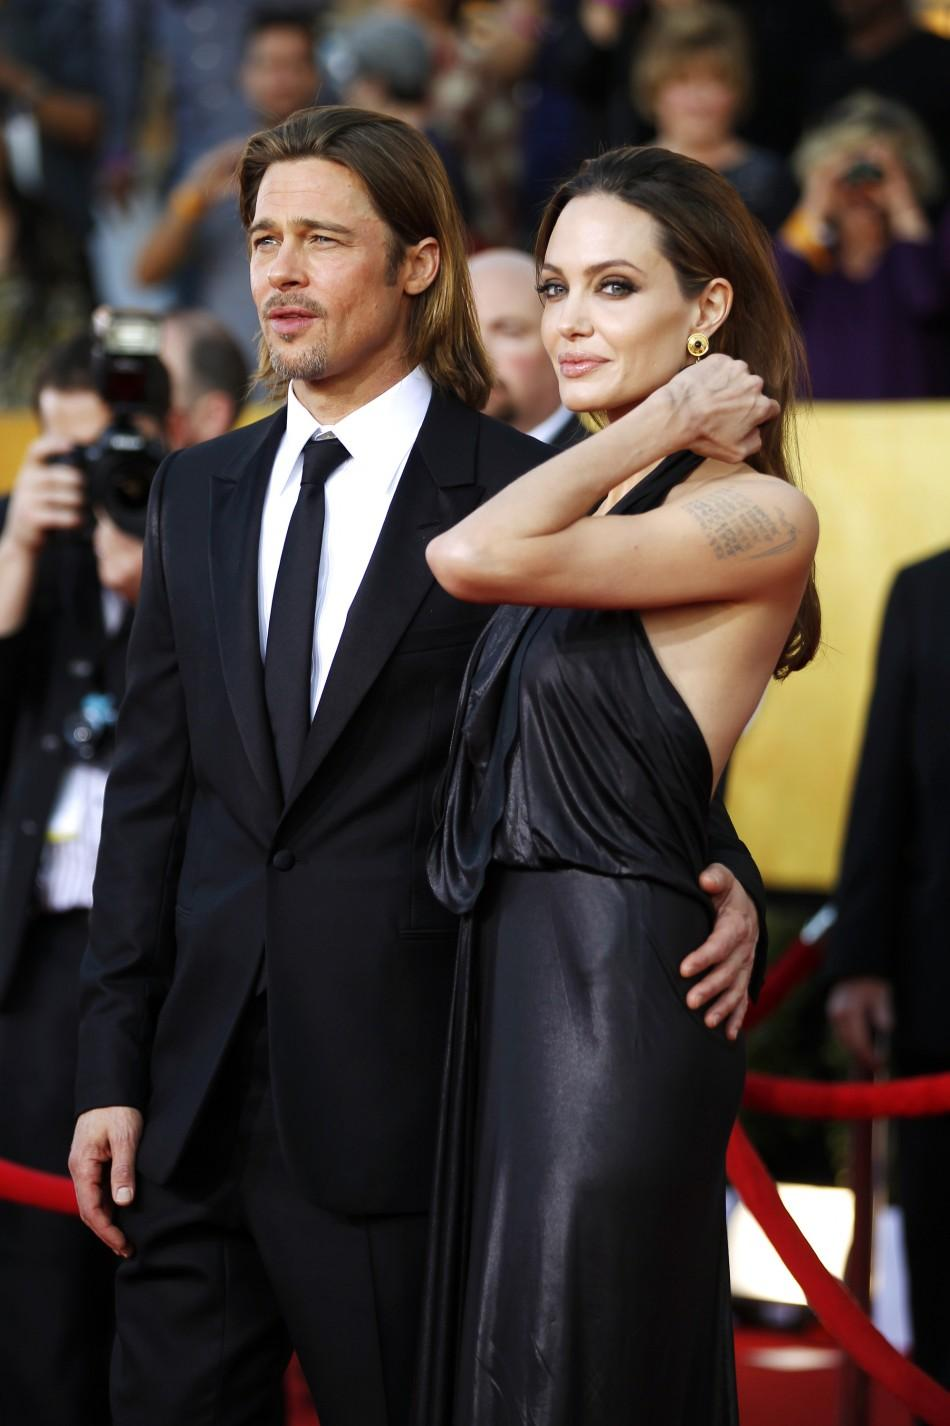 Brad-Angelina: Most Photographed Celeb Couple at SAG Awards 2012 (PHOTOS)